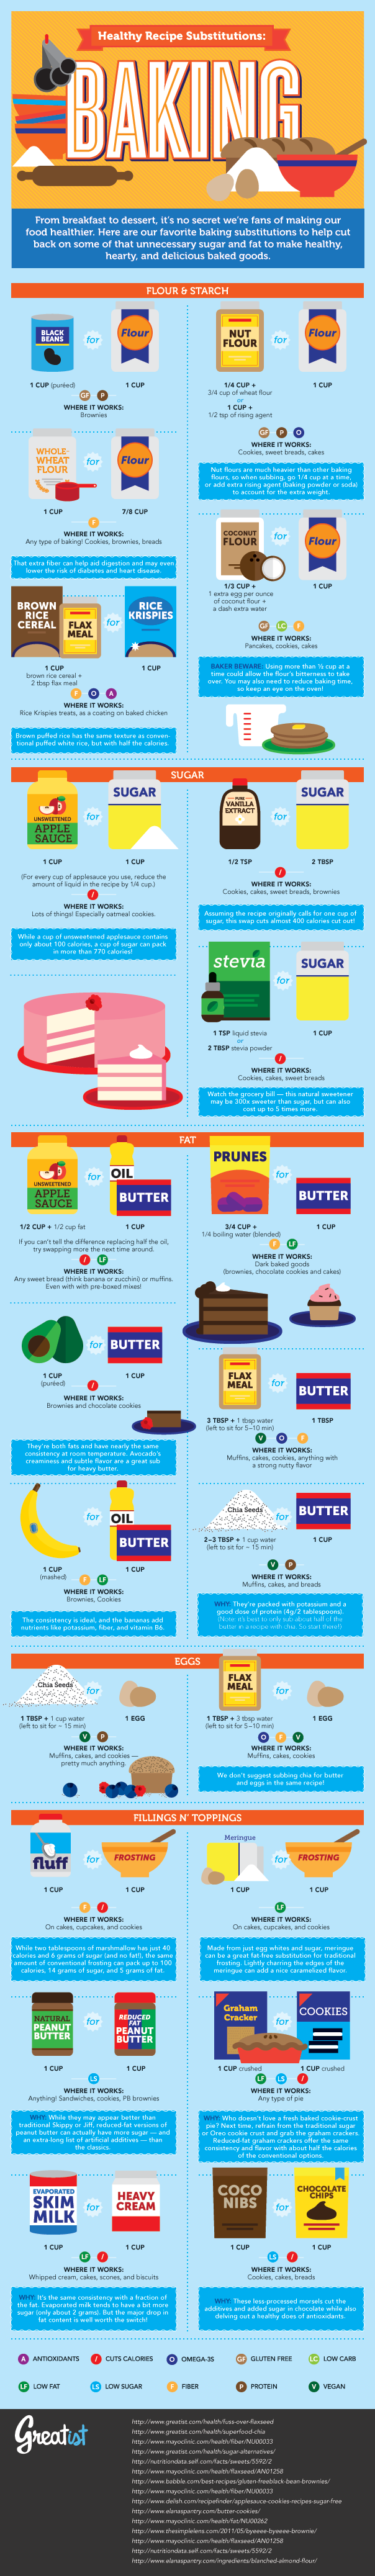 Image Source: Greatist.com | Healthy Baking Substitution Infographic